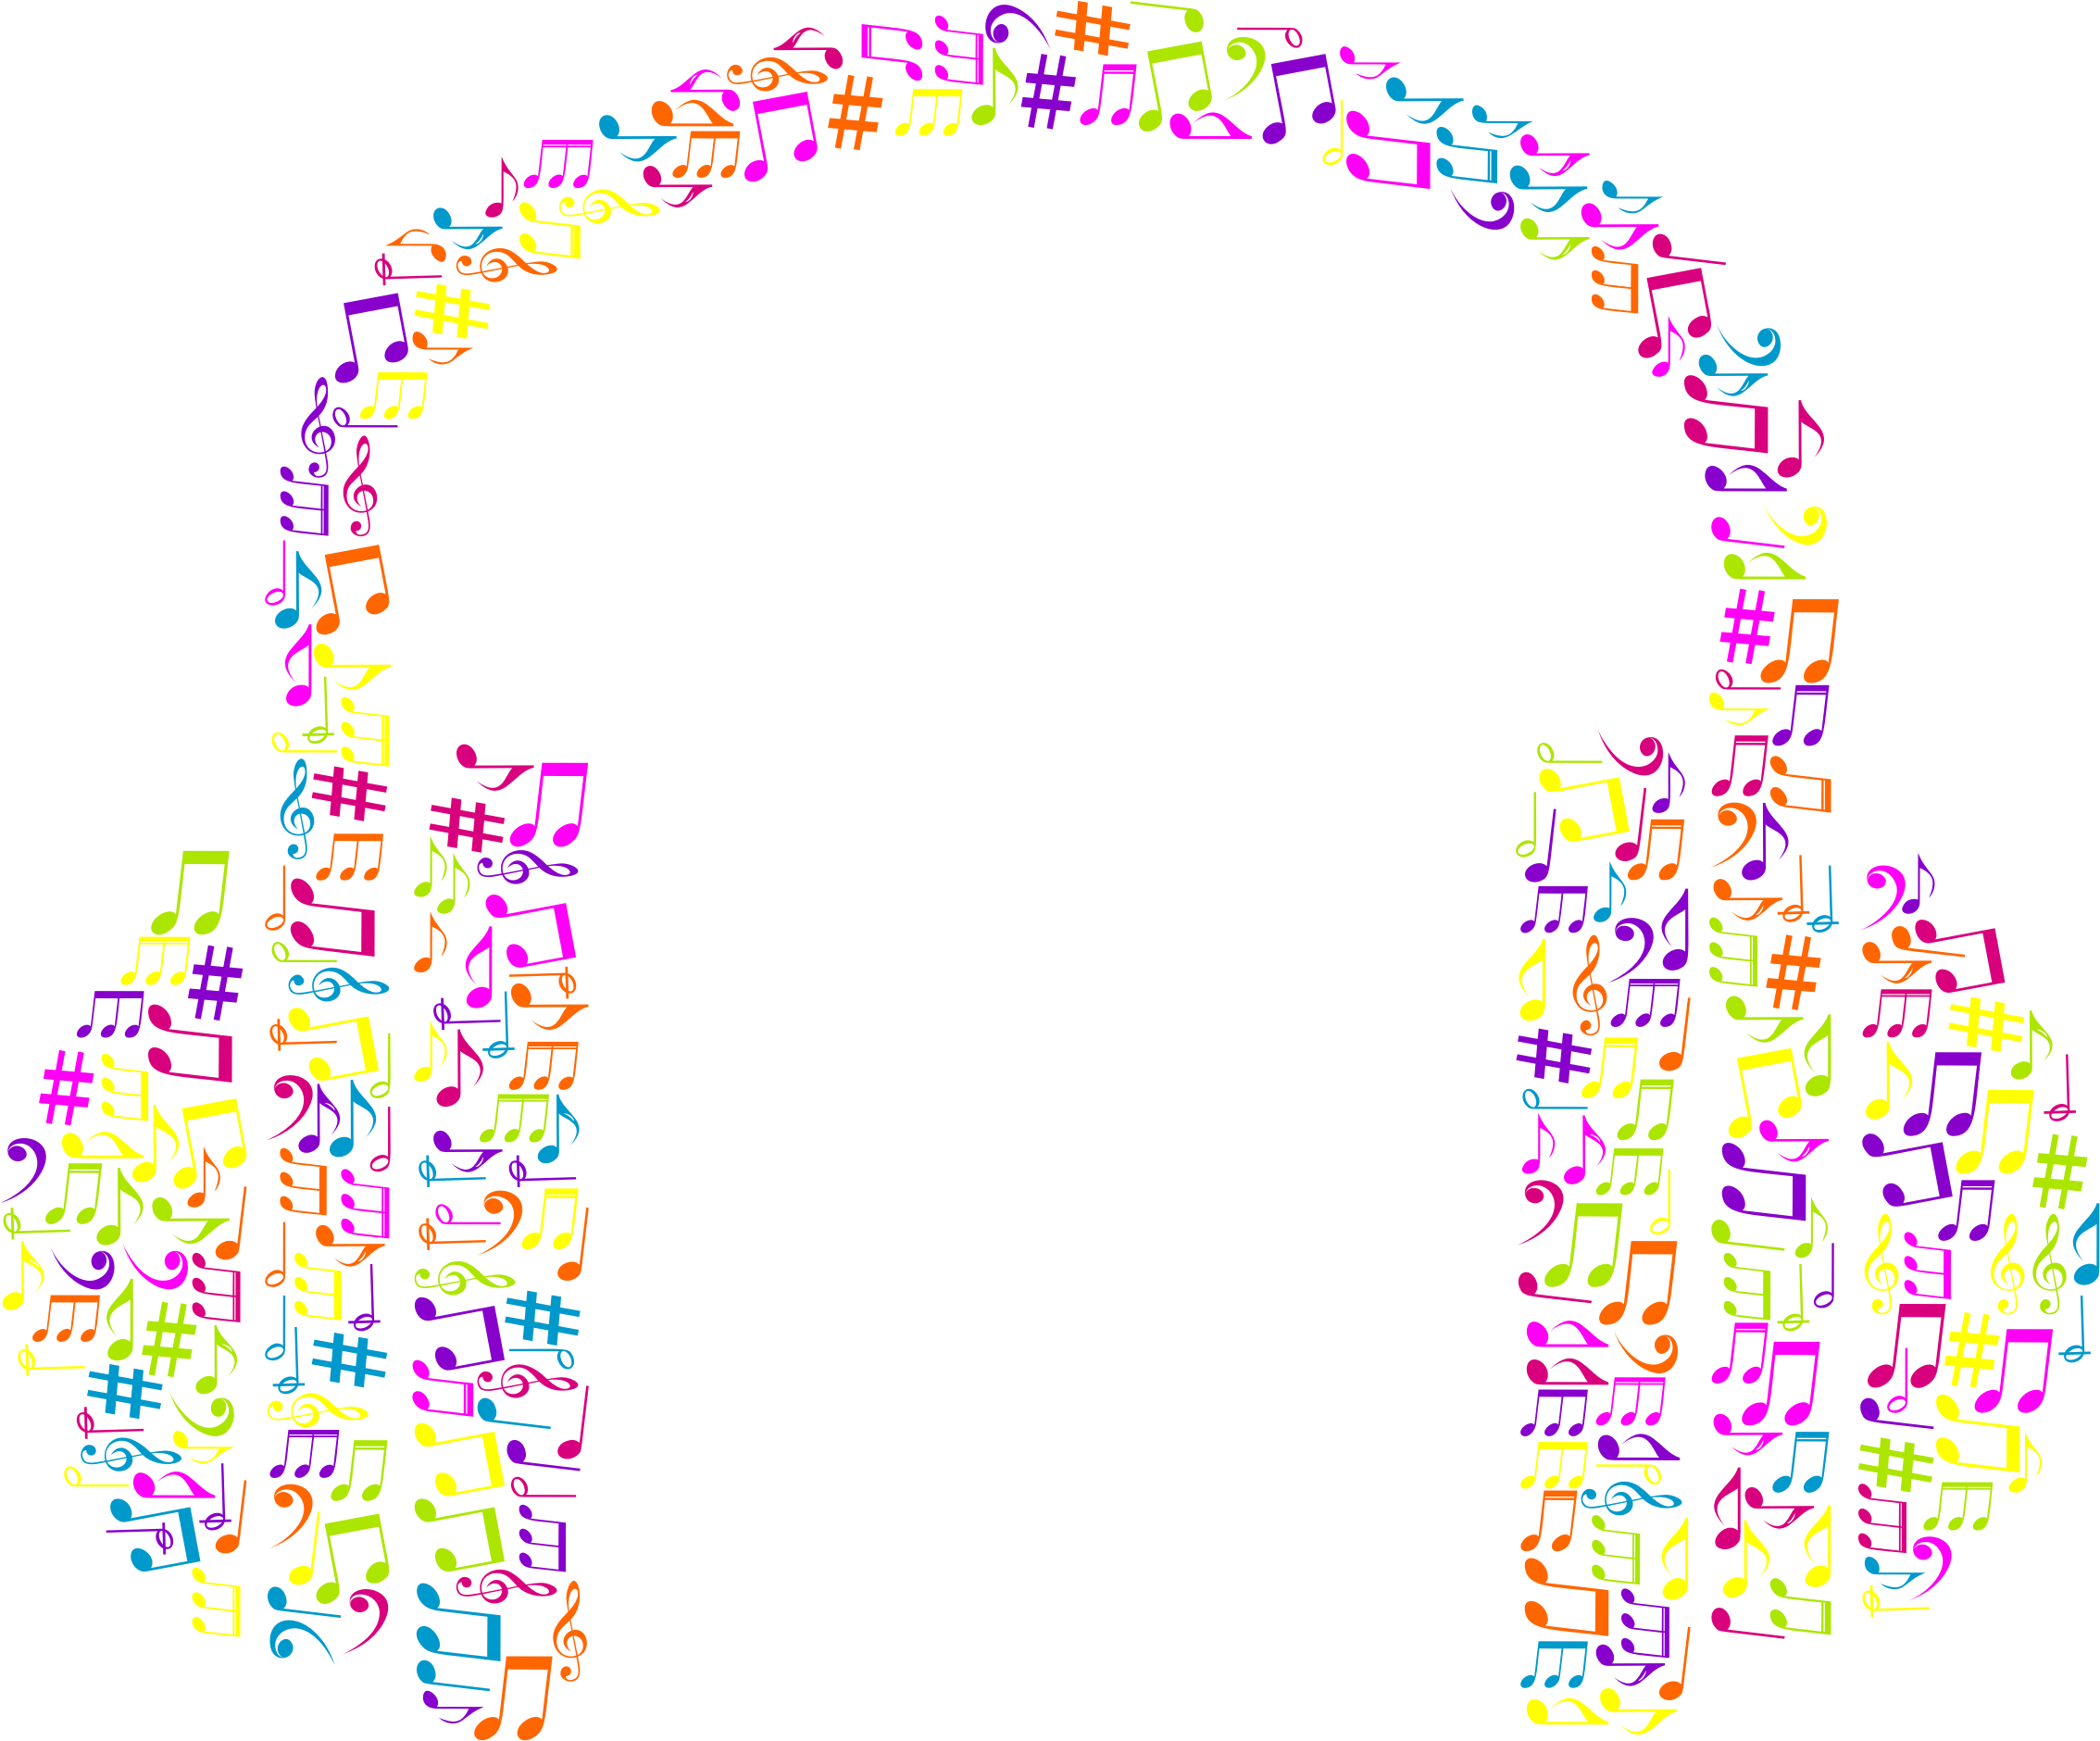 Headphone clipart music note Musical Notes No Background No